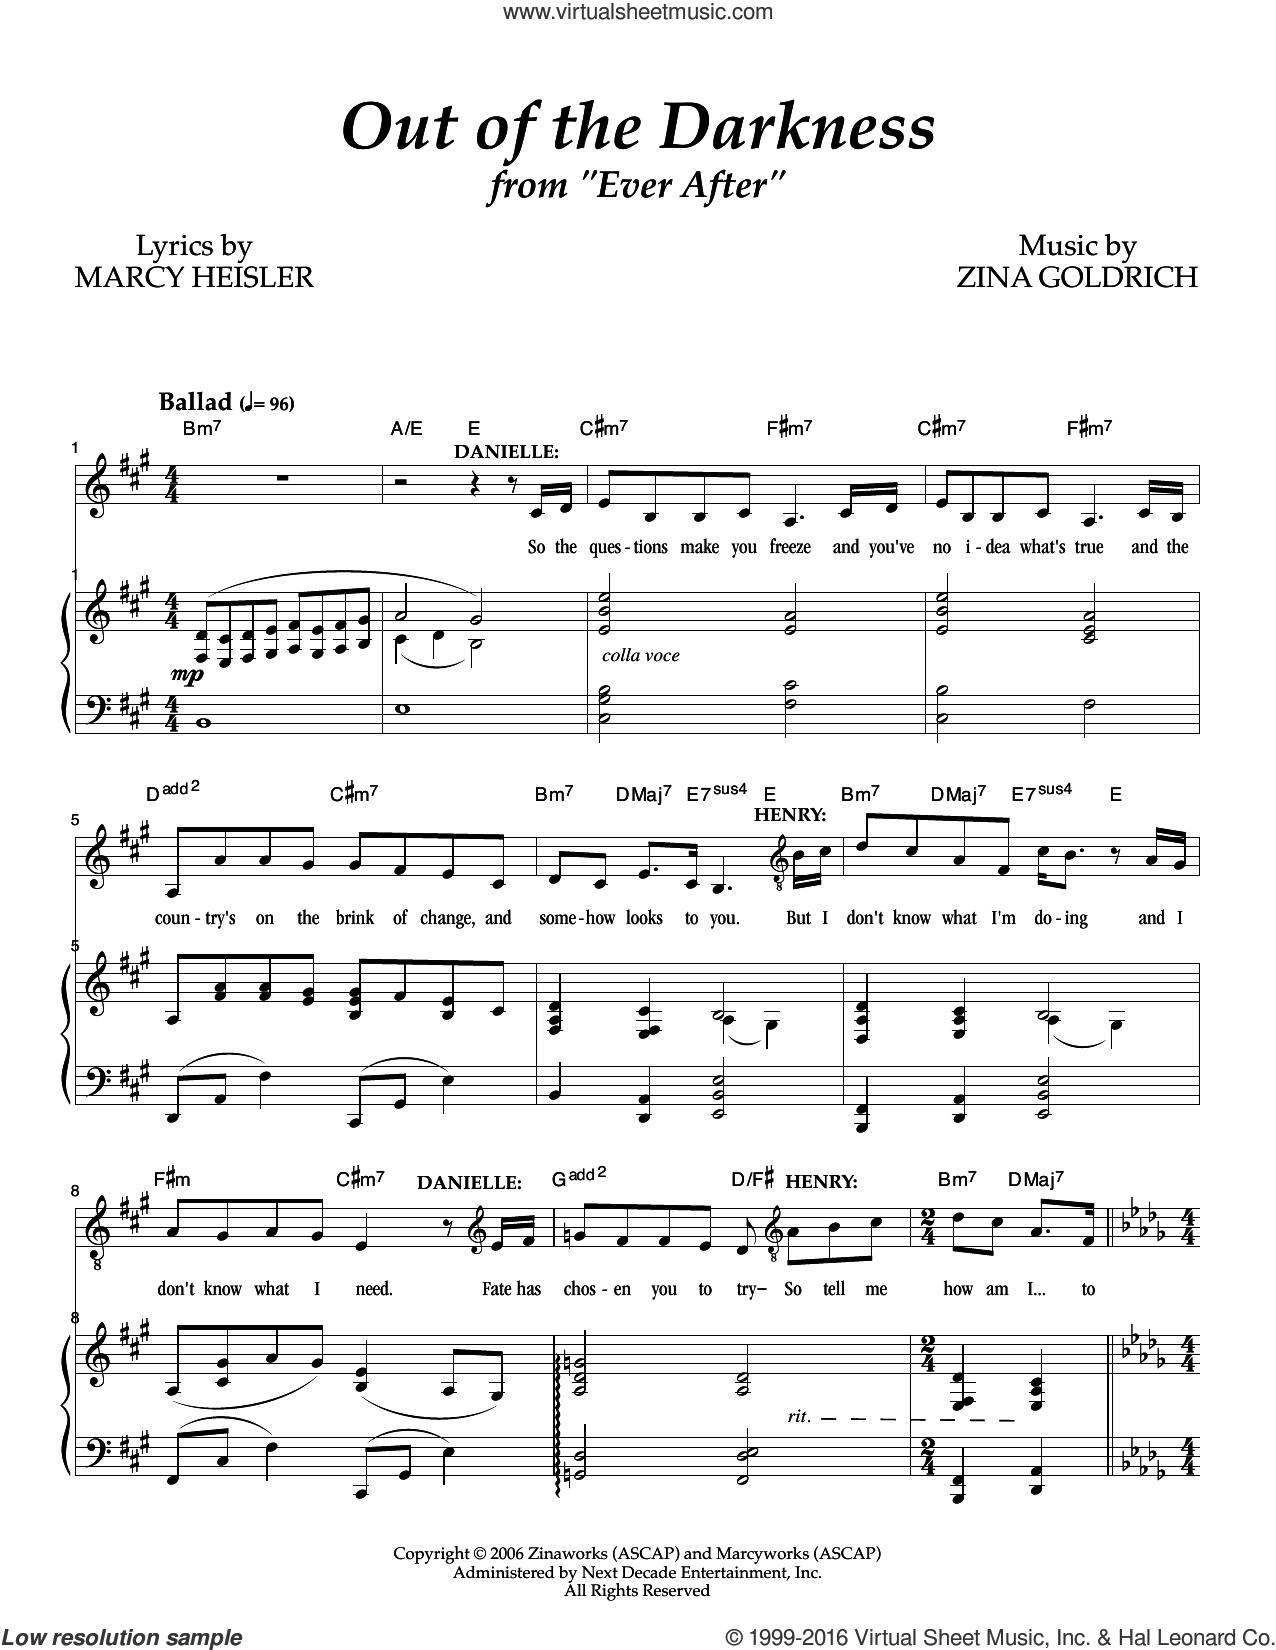 Out Of The Darkness sheet music for voice and piano by Zina Goldrich